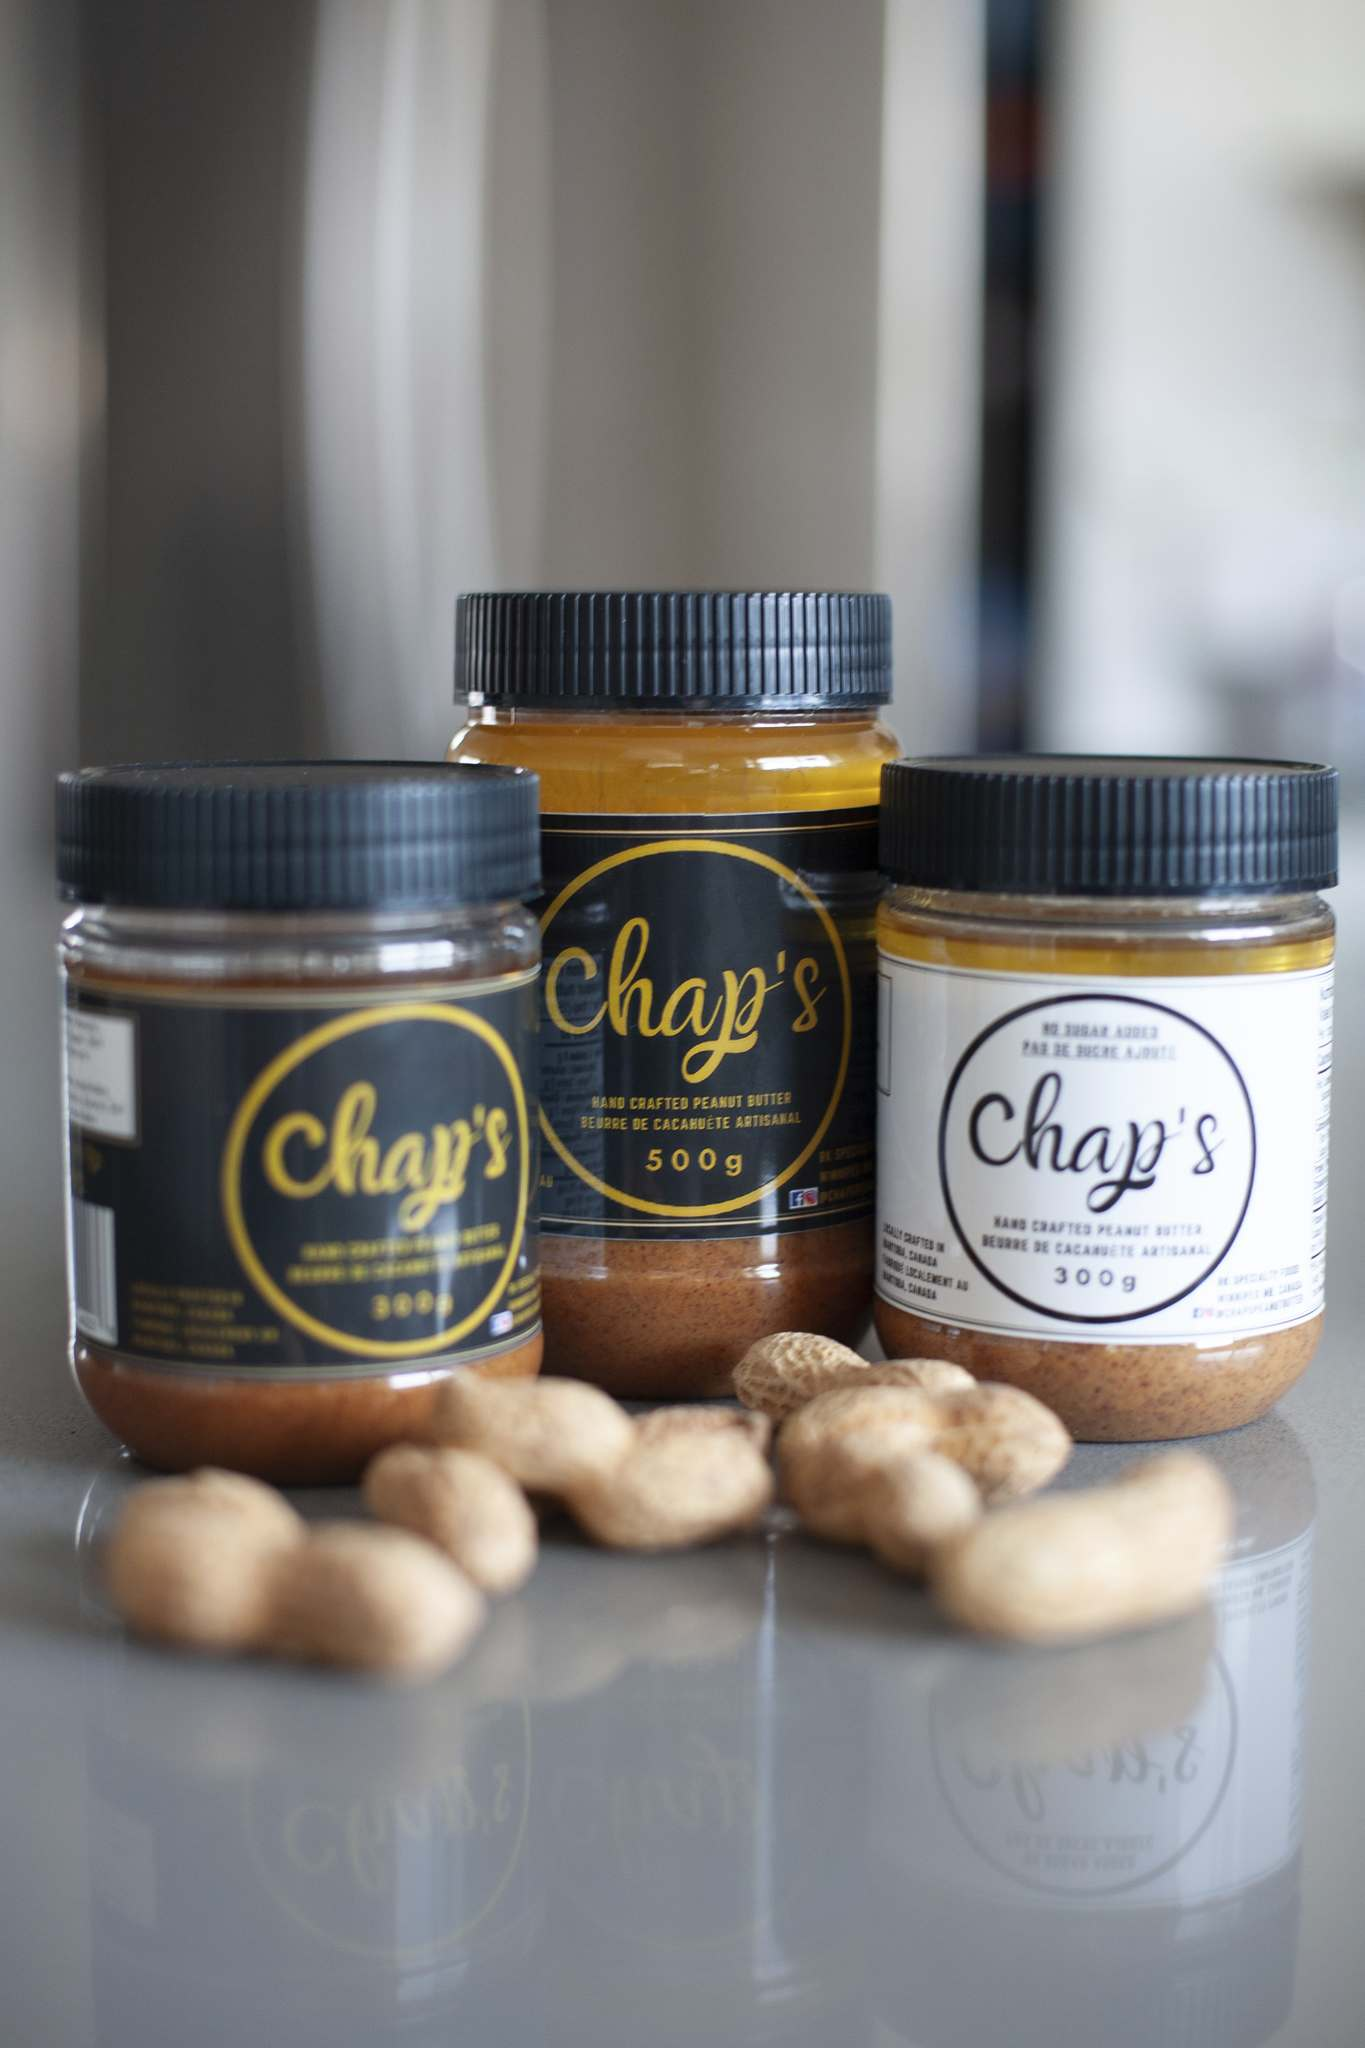 Chap's Hand Crafted Peanut Butter, which comes in sweetened and sugar-free varieties, is available in close to 20 stores around Winnipeg.</p>